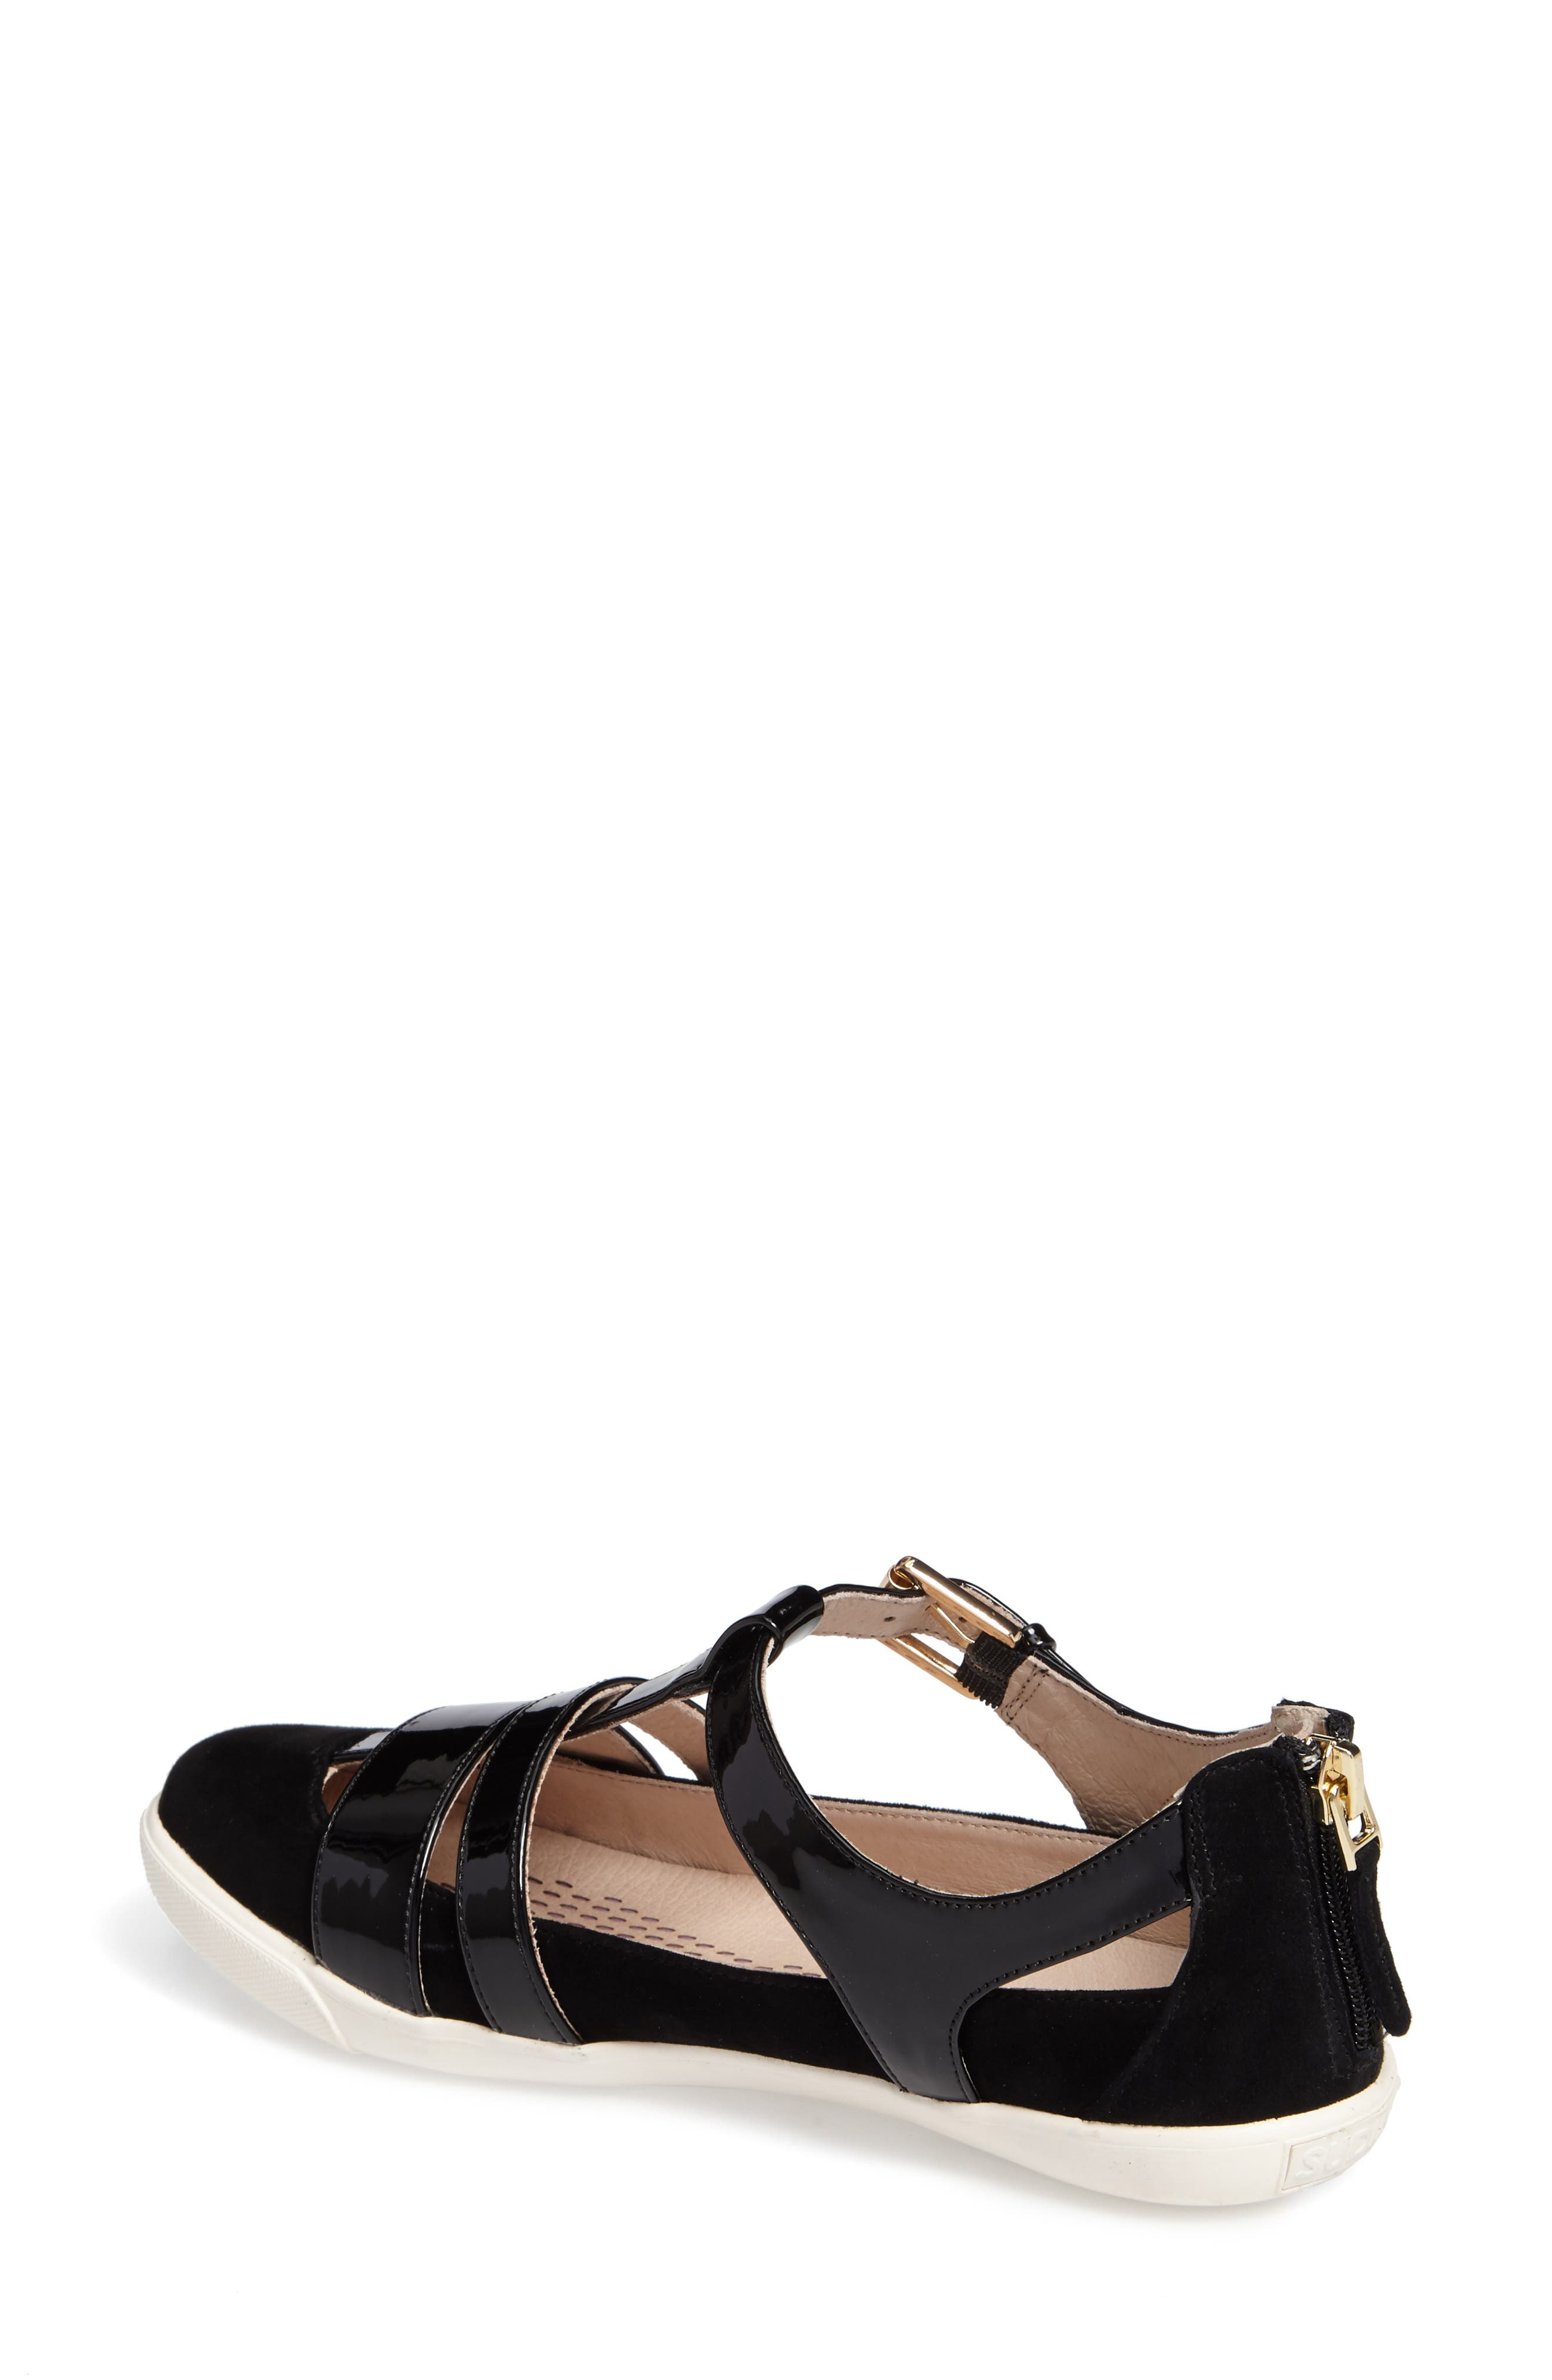 Iona Strappy Sneaker,                             Alternate thumbnail 2, color,                             001